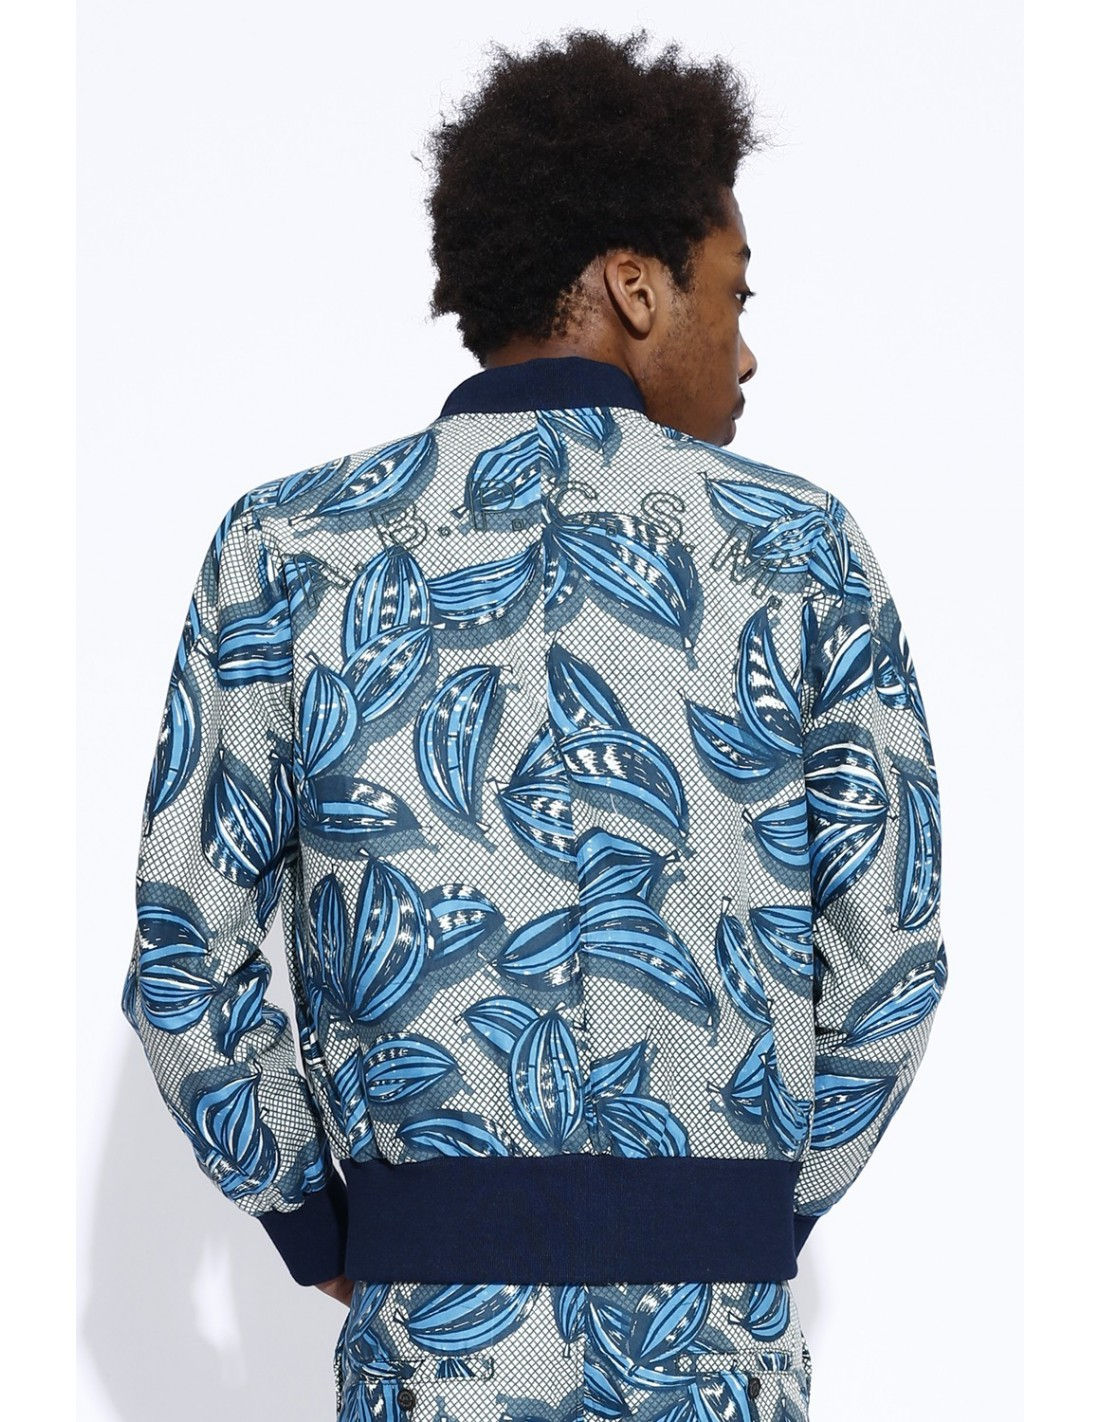 Alastair by Estelle Rancurel